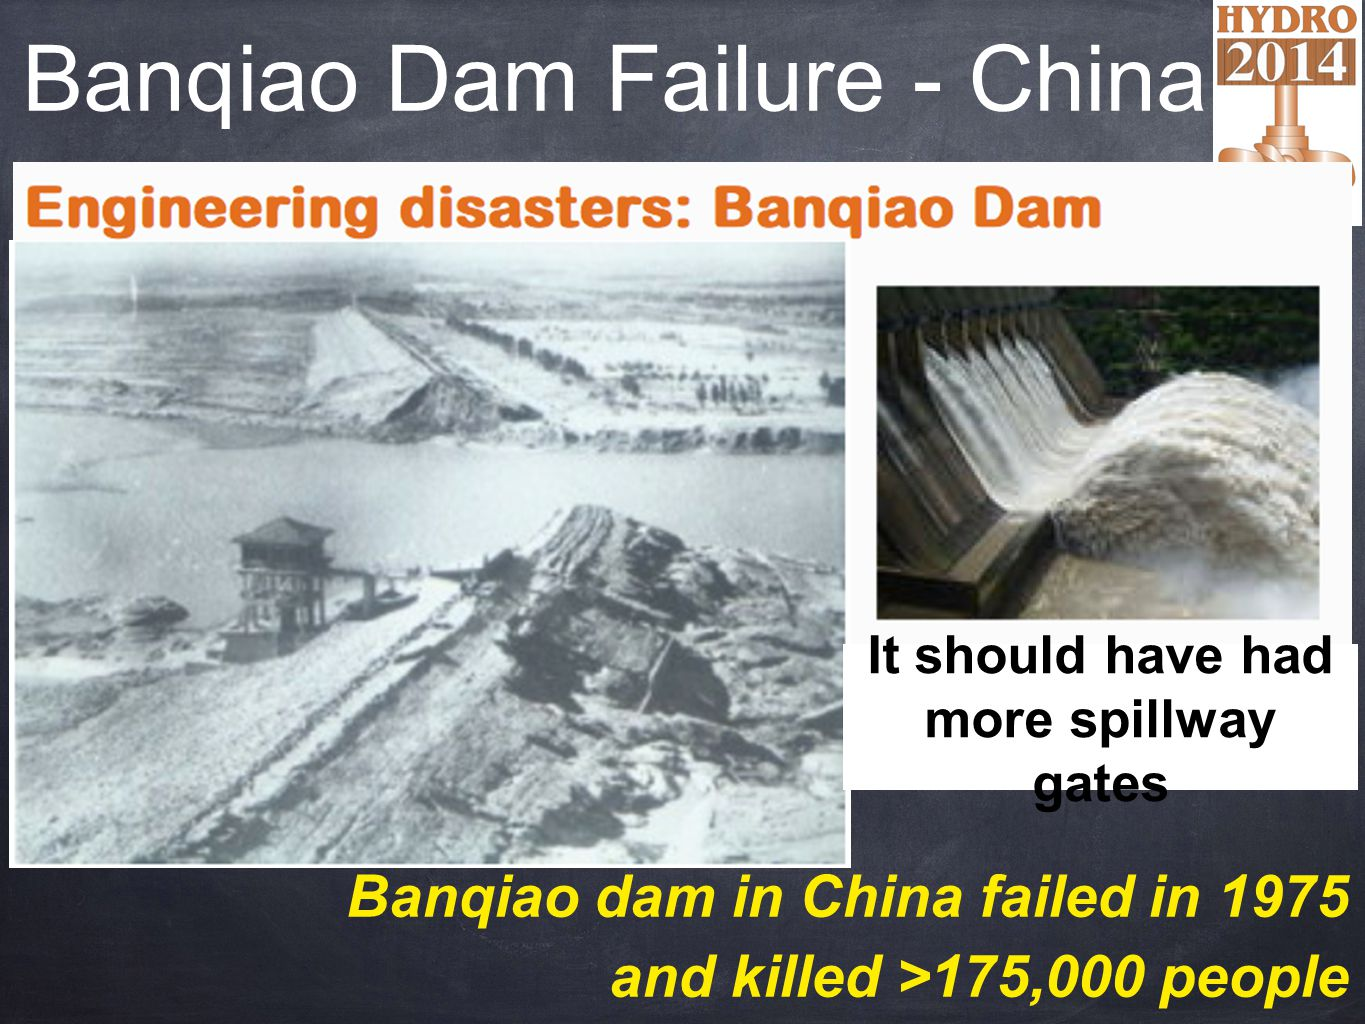 Banqiao Dam Failure - China It should have had more spillway gates Banqiao dam in China failed in 1975 and killed >175,000 people